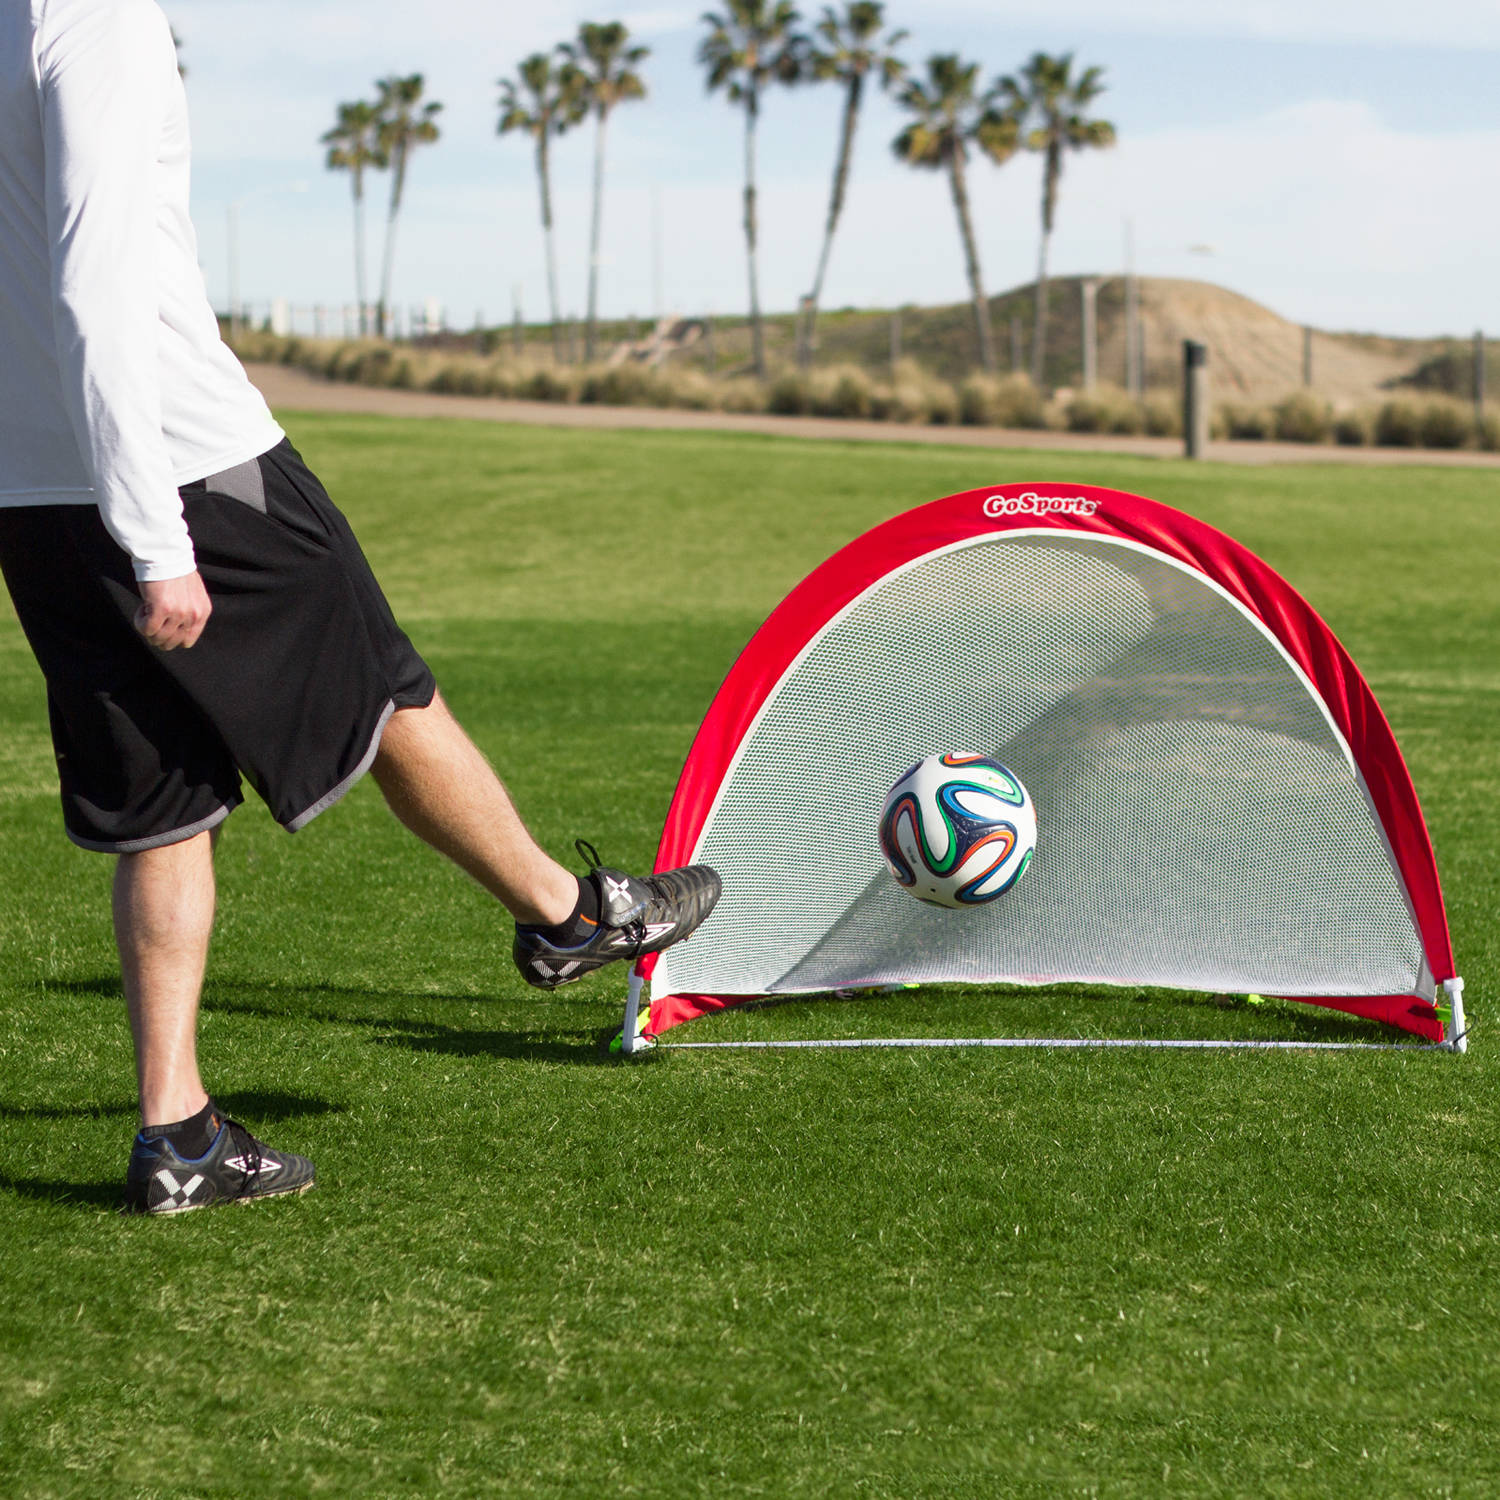 77dd07da7 GoSports 4' Foldable Pop-Up Soccer Goal Set of 2 w/ 6 Training Cones and  Portable Carrying Case - Walmart.com